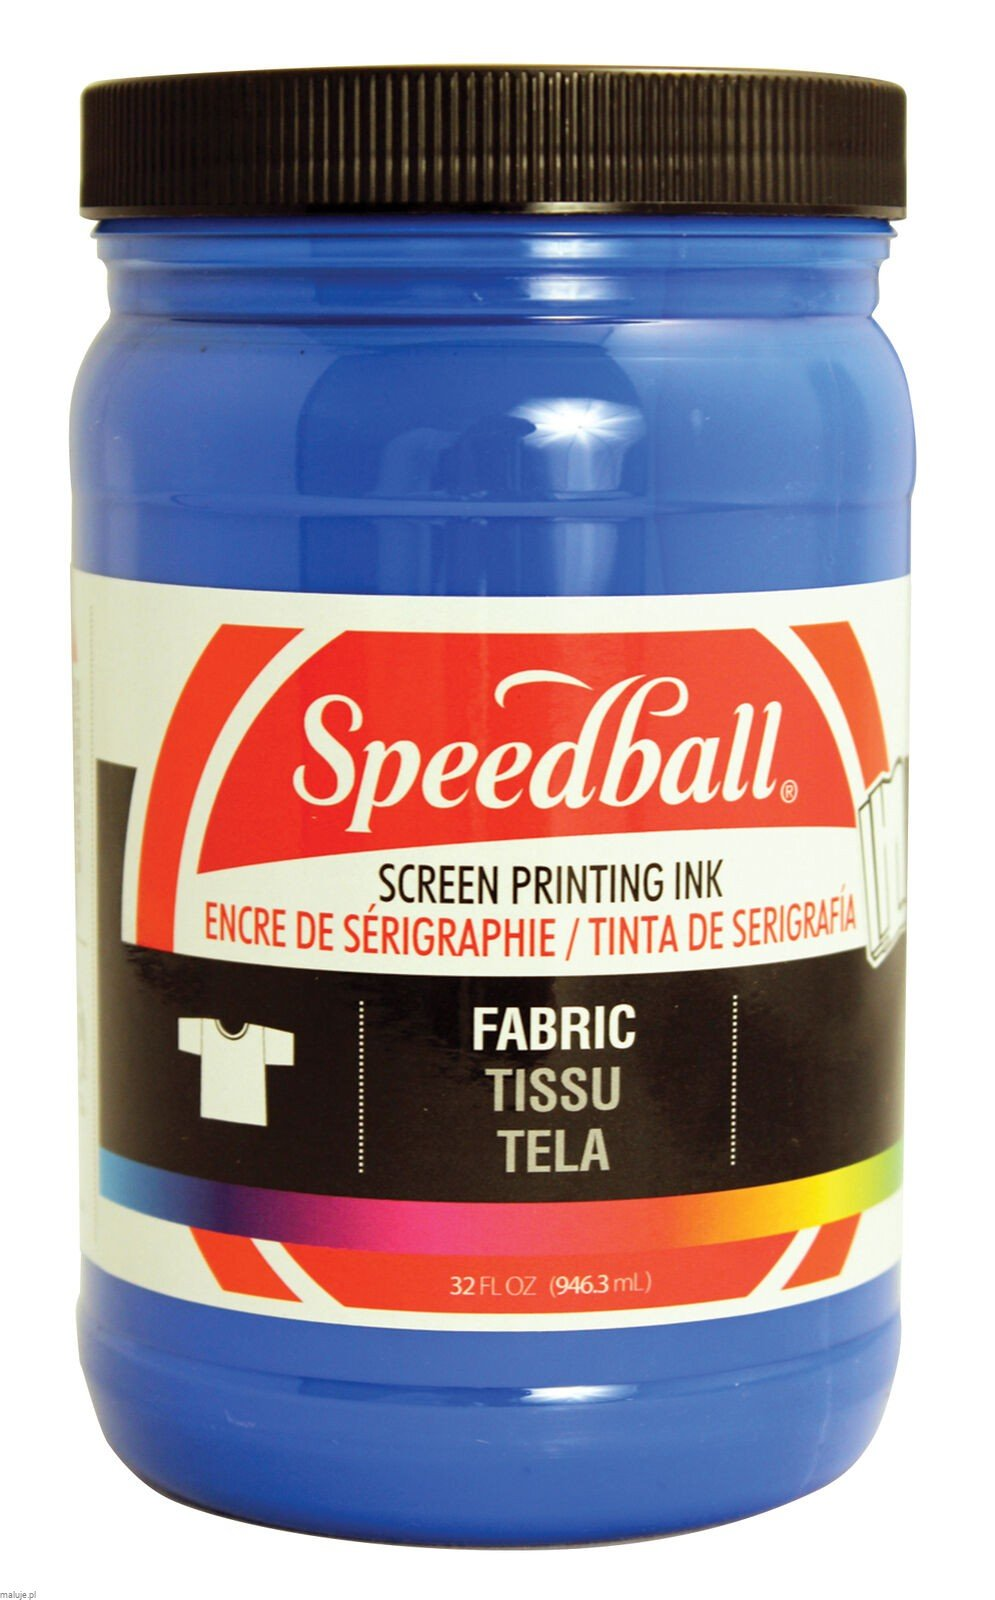 Speedball Fabric Screen Printing Ink BLUE - farba do sitodruku na tkaninach